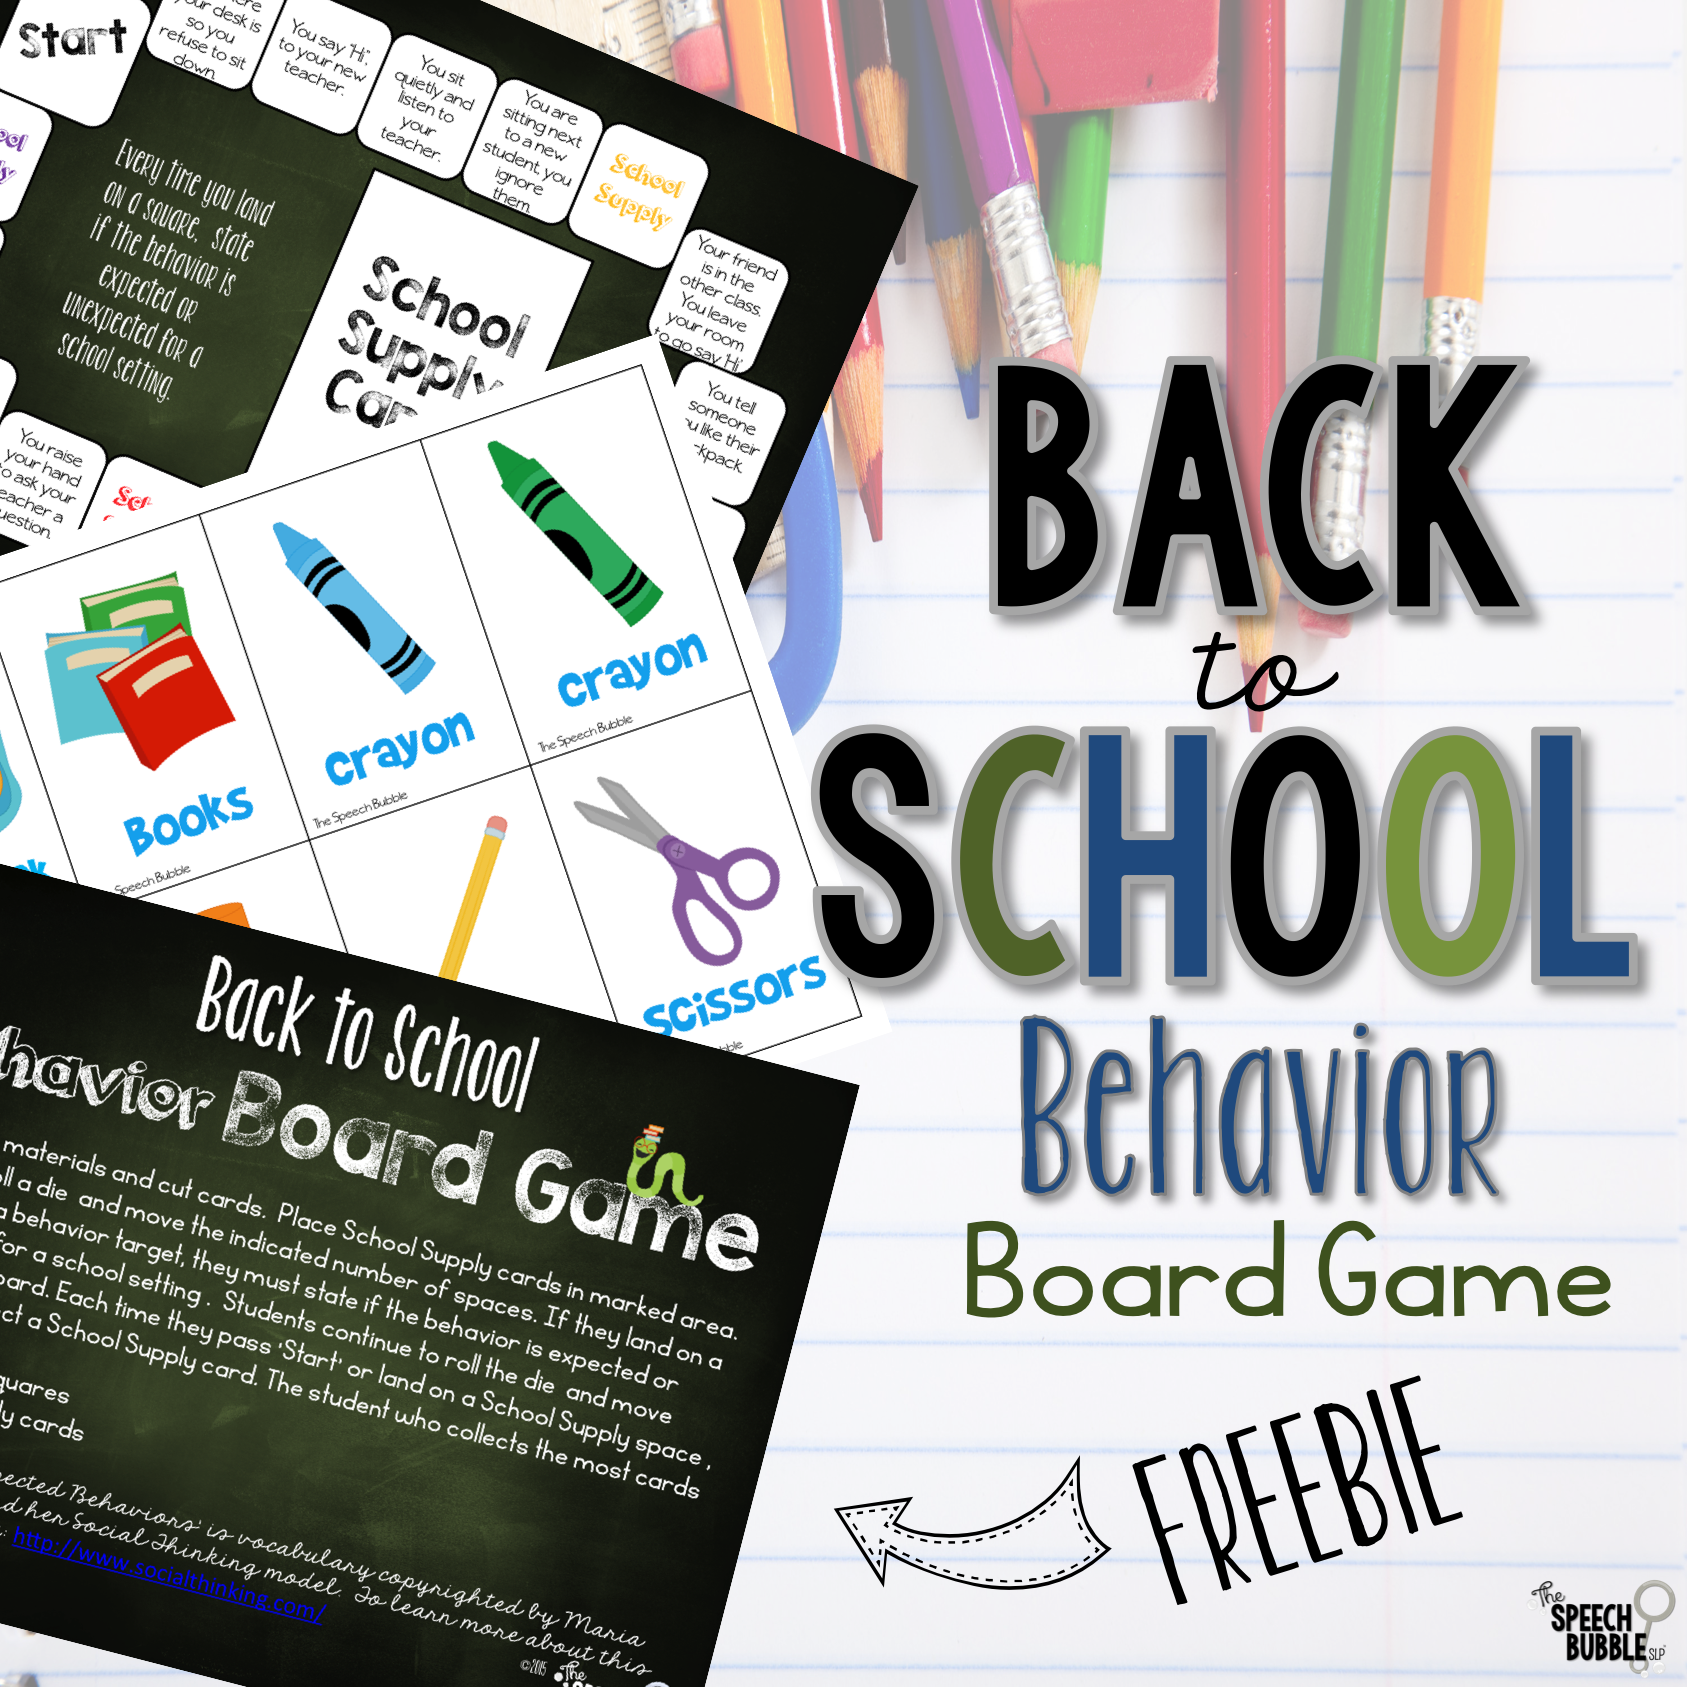 Back to school behavior freebie